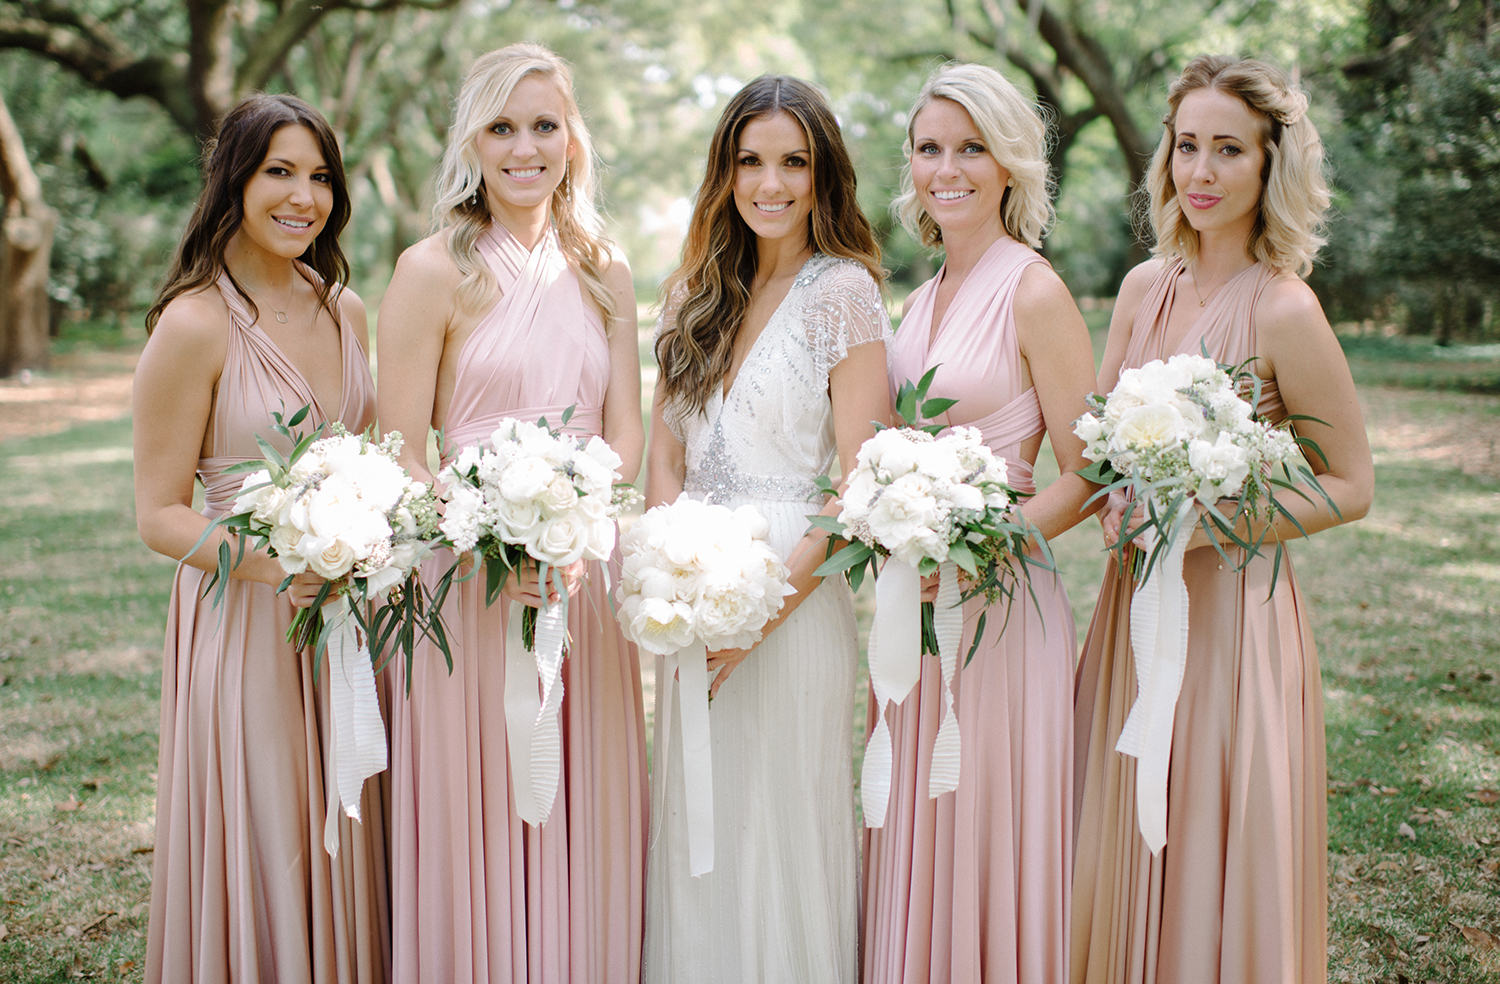 Photo via Bella Bridesmaids.